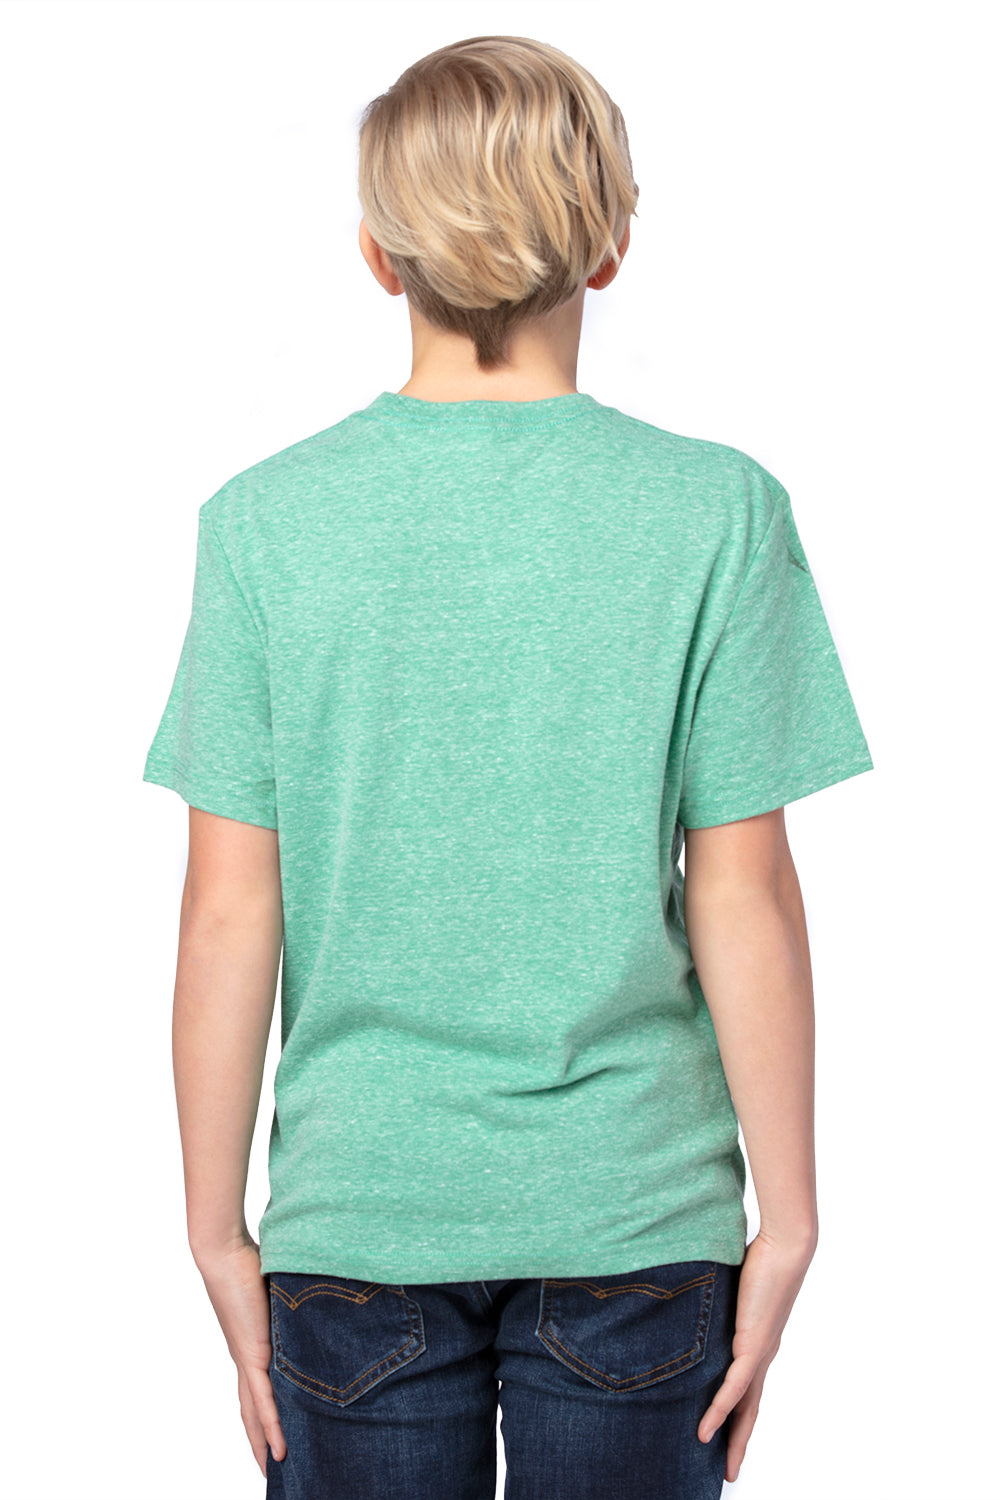 Threadfast Apparel 602A Youth Short Sleeve Crewneck T-Shirt Green Back